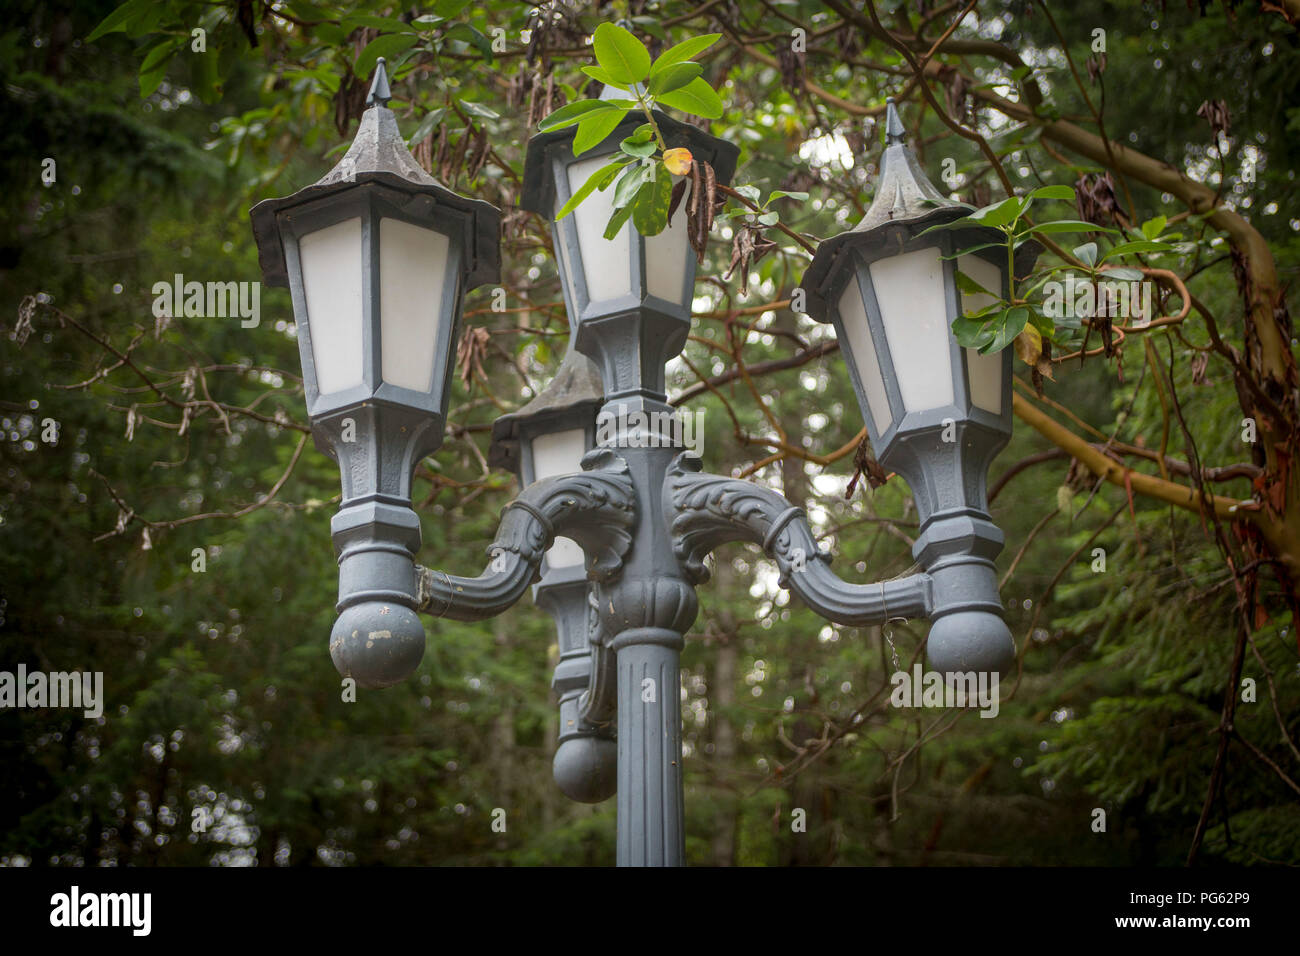 Vintage lamp post - Stock Image